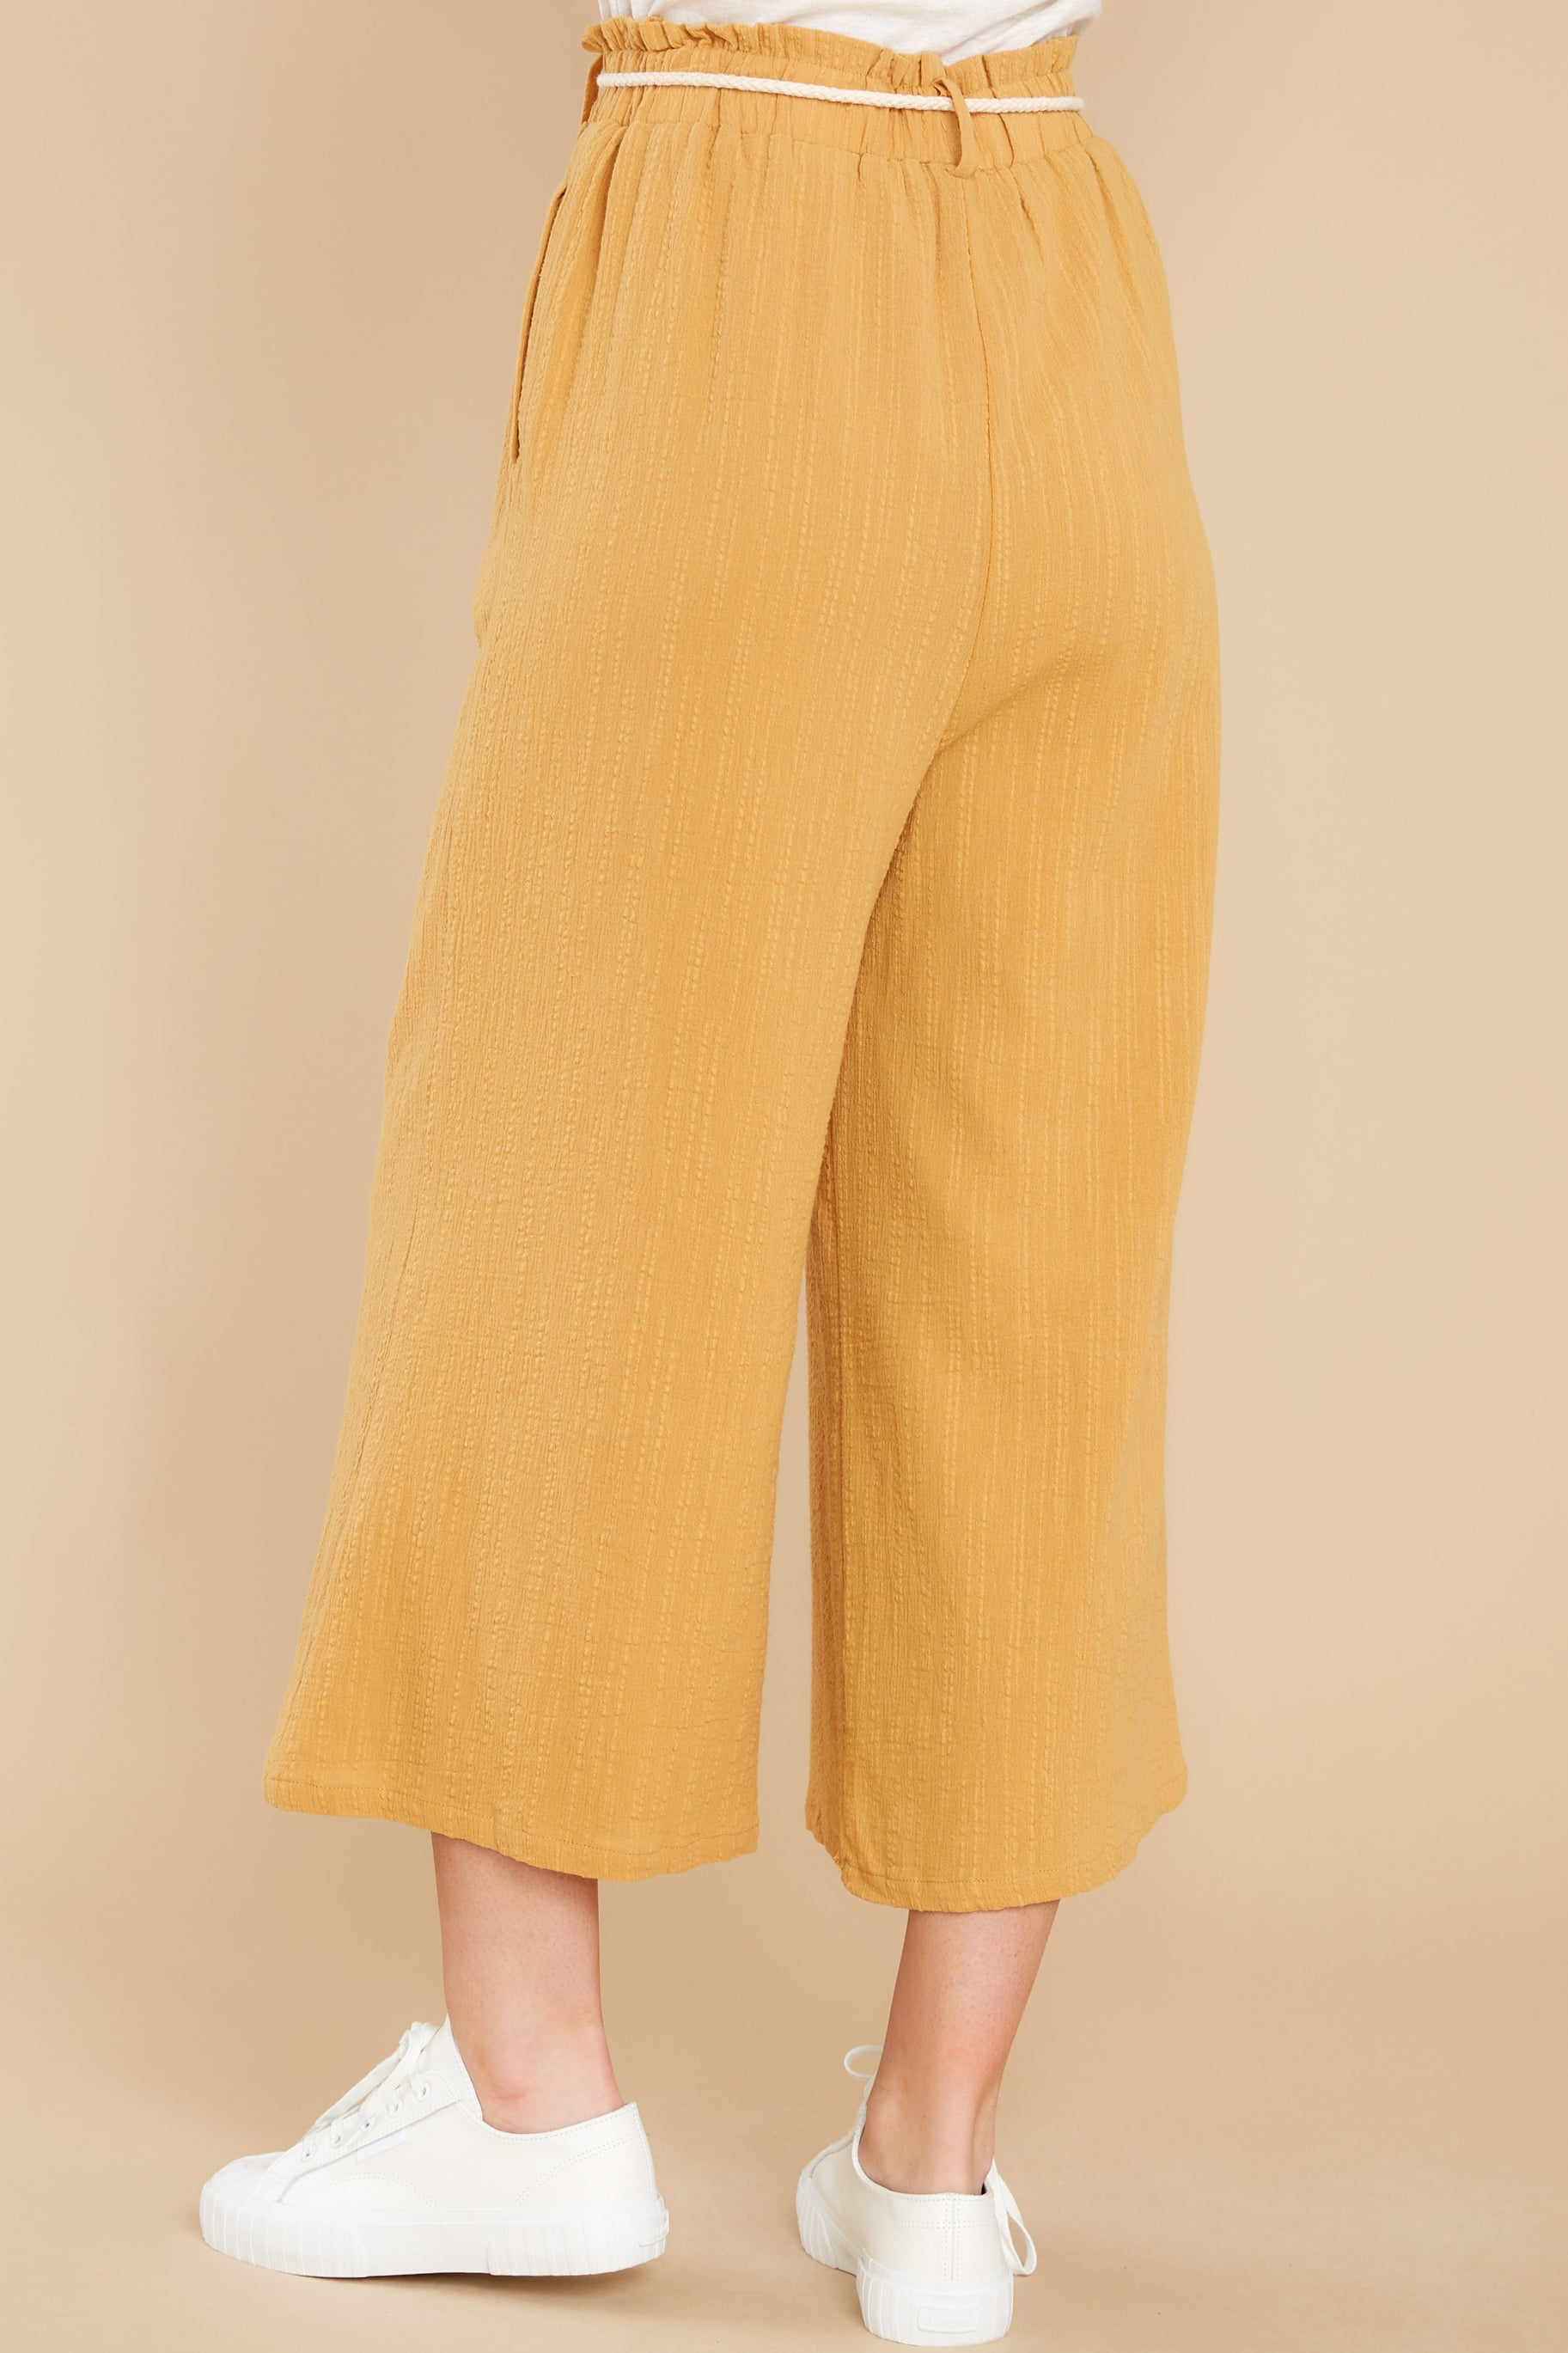 3 Eternal Bliss Mustard Pants at reddress.com